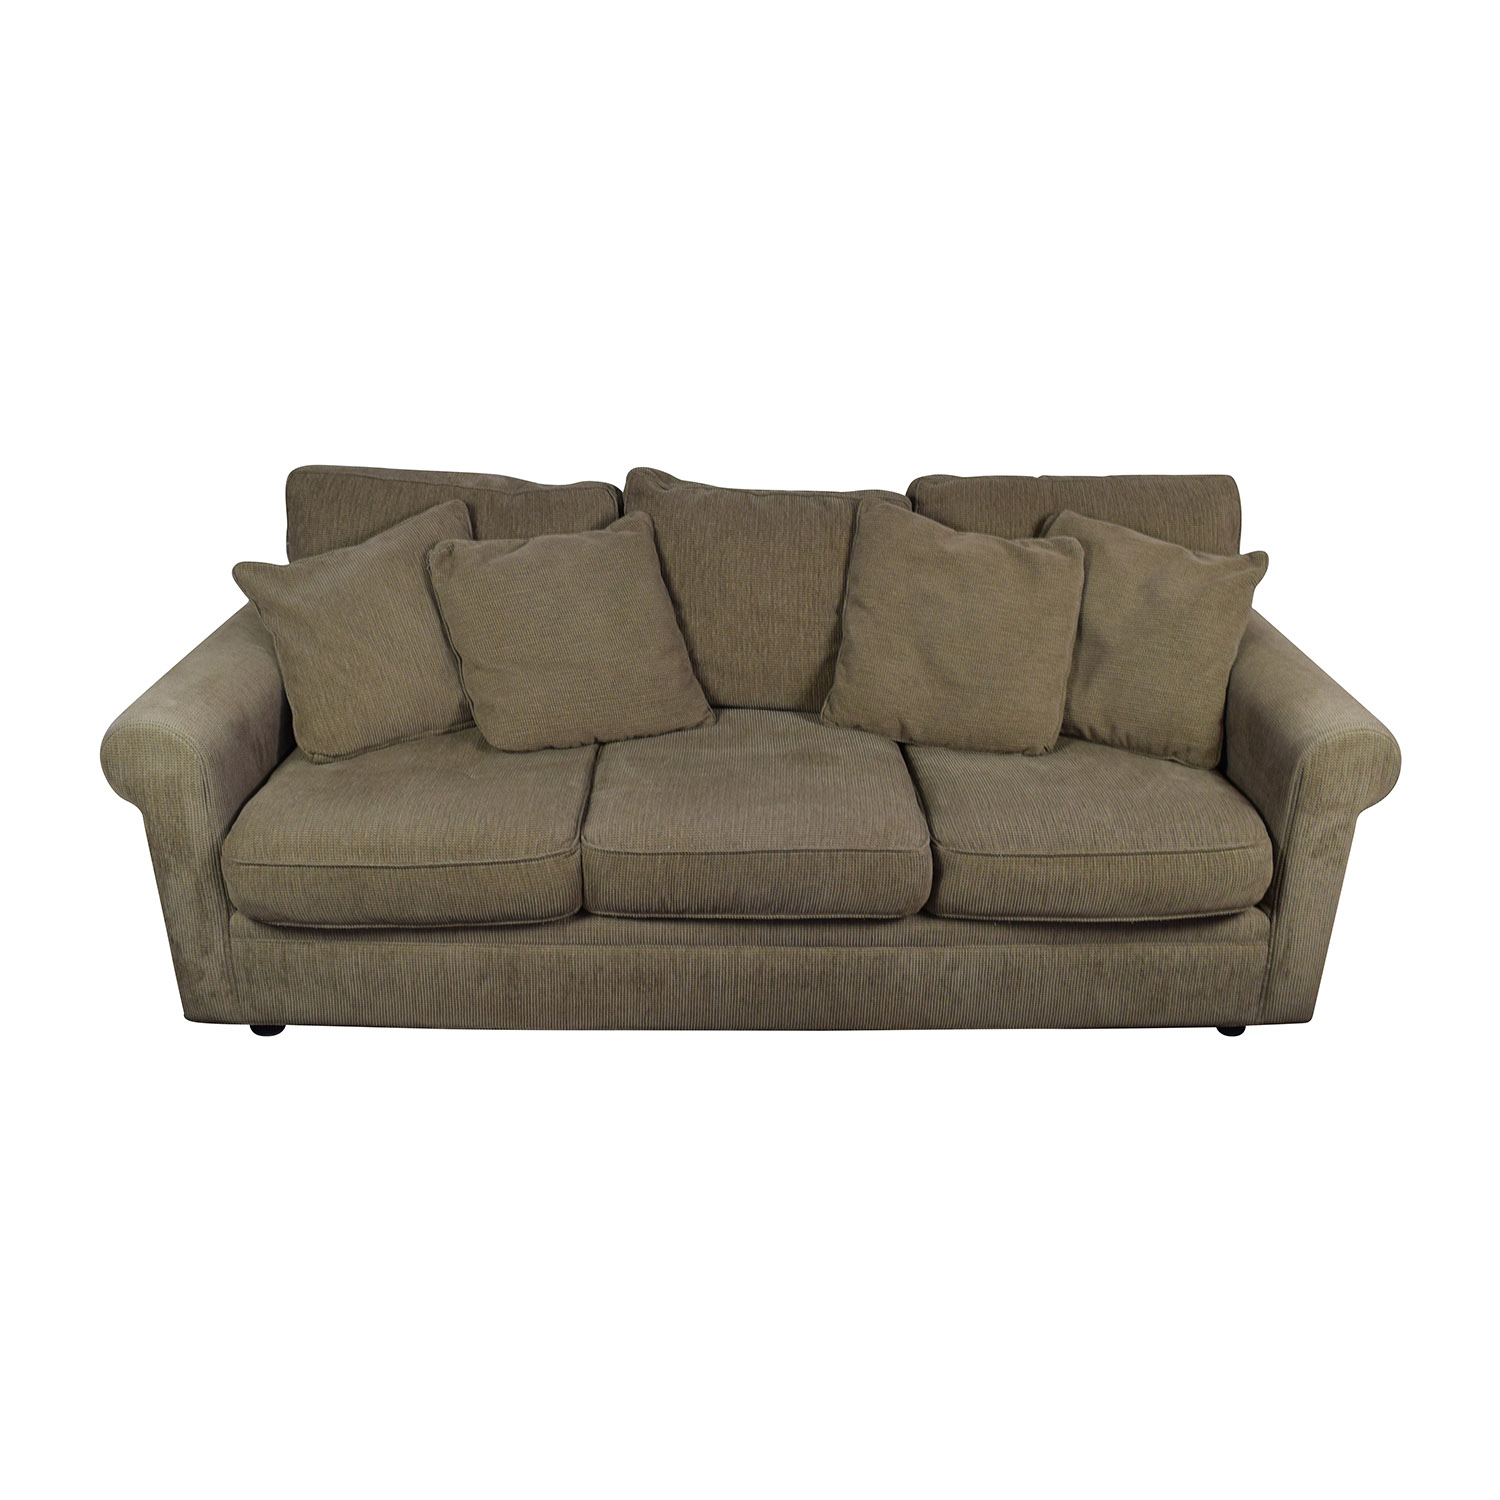 buy crate and barrel crate and barrel tan textured sofa online